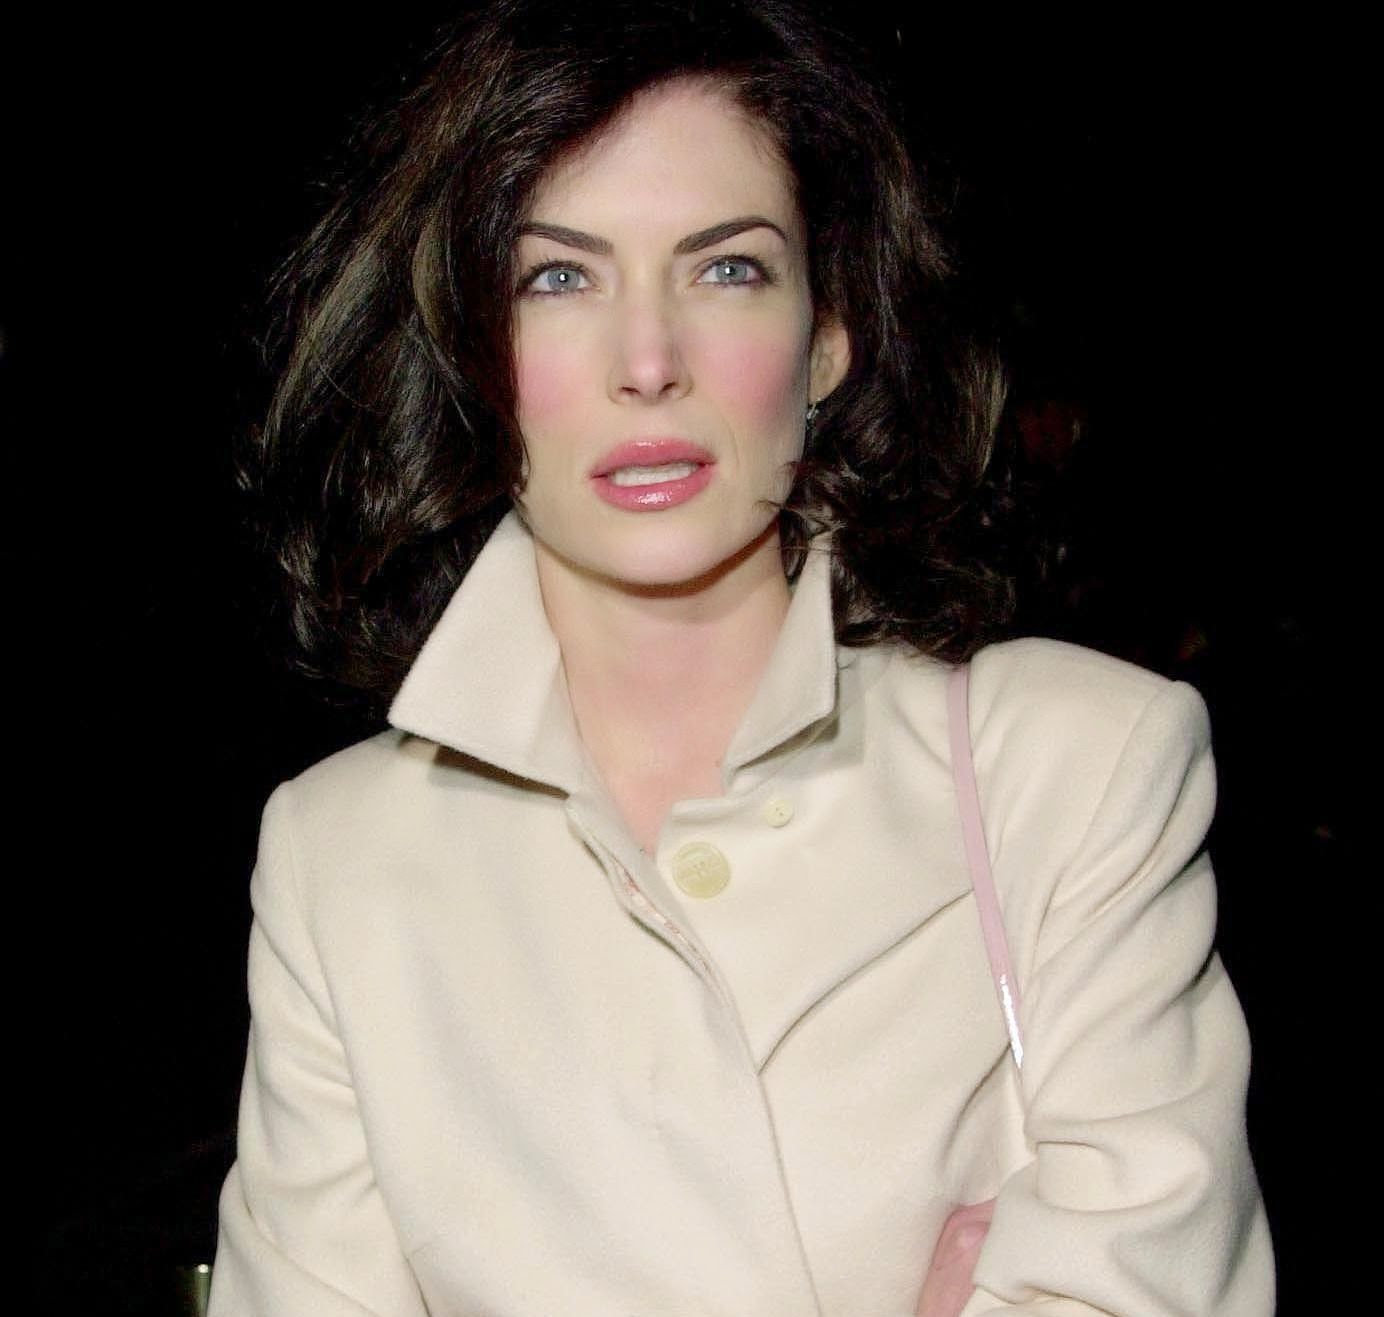 Lara Flynn Boyle Wallpapers Free Download